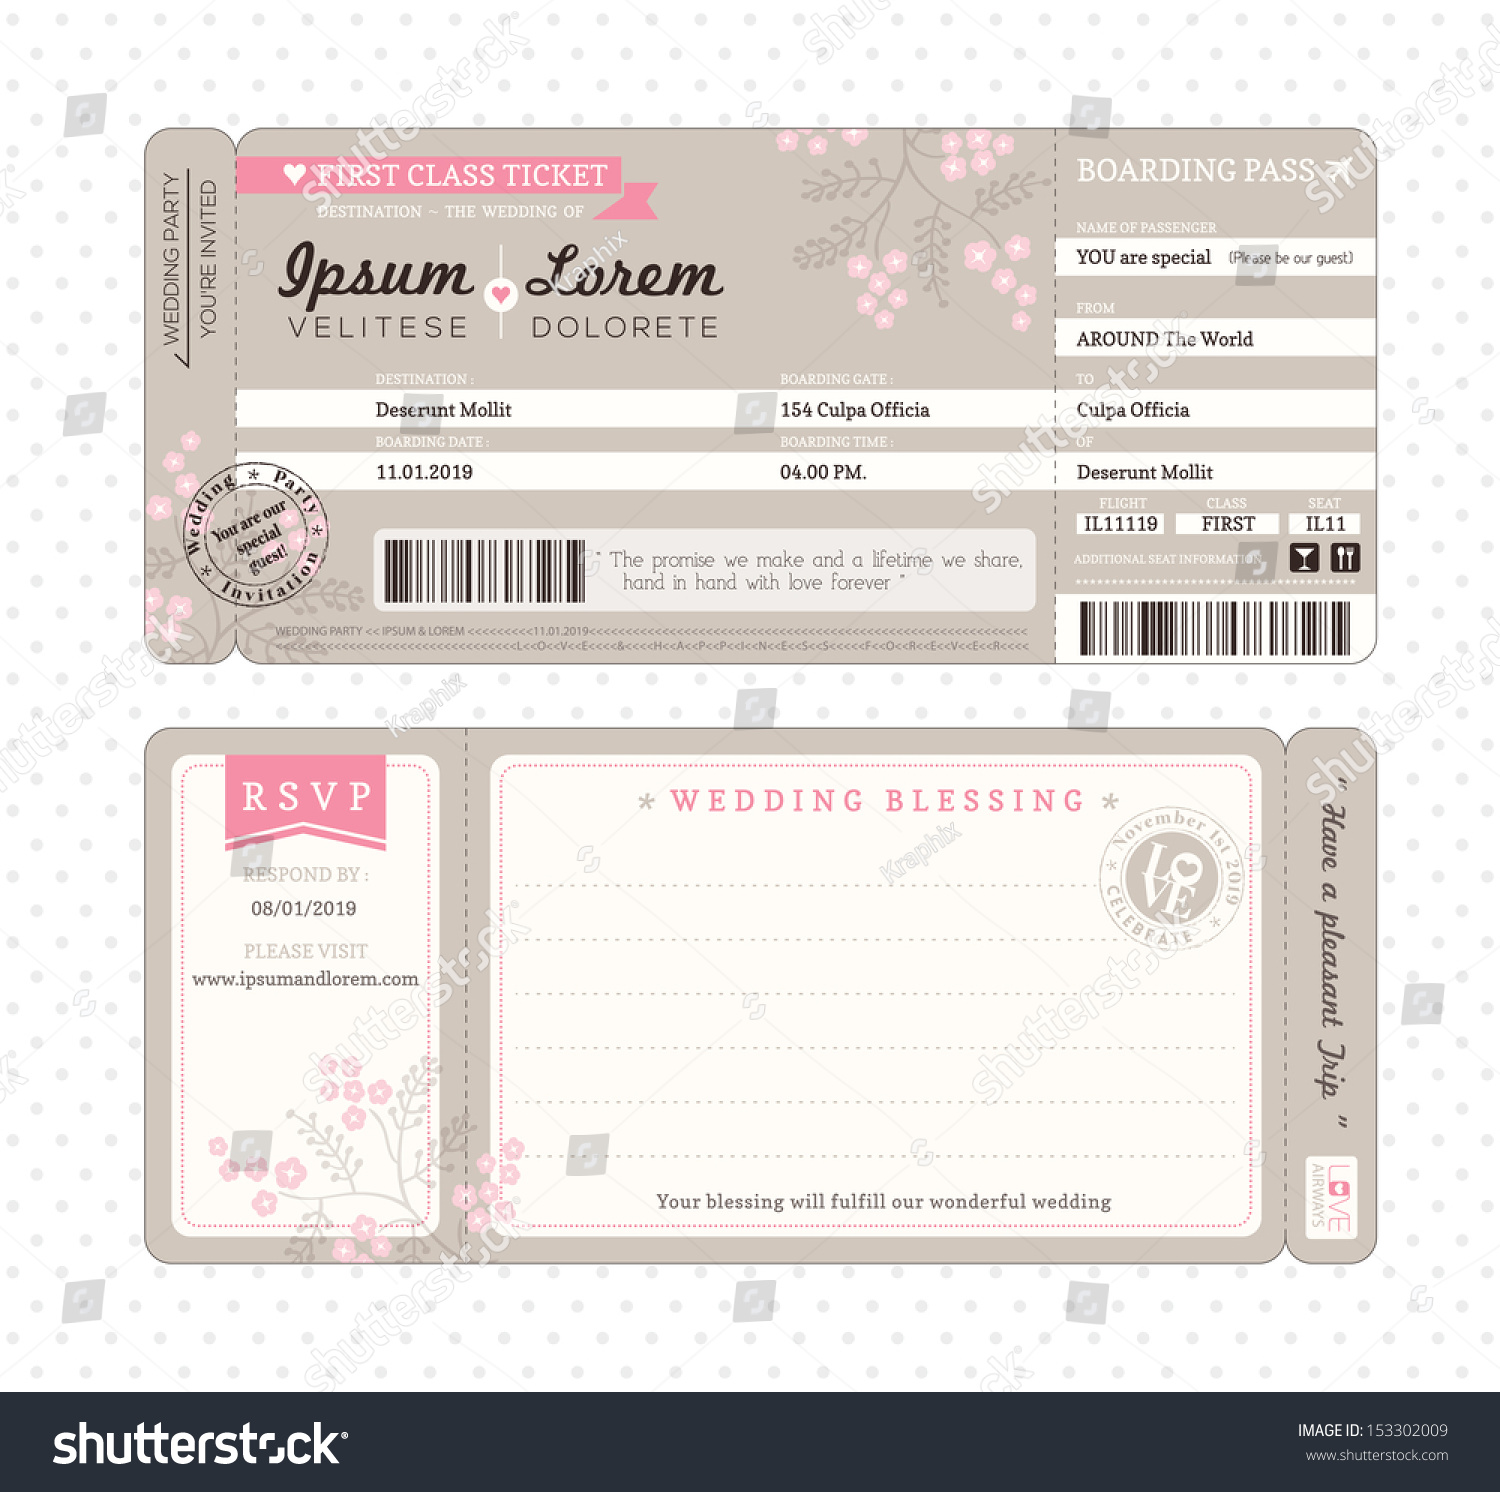 Boarding Pass Ticket Wedding Invitation Template Stock Vector ...